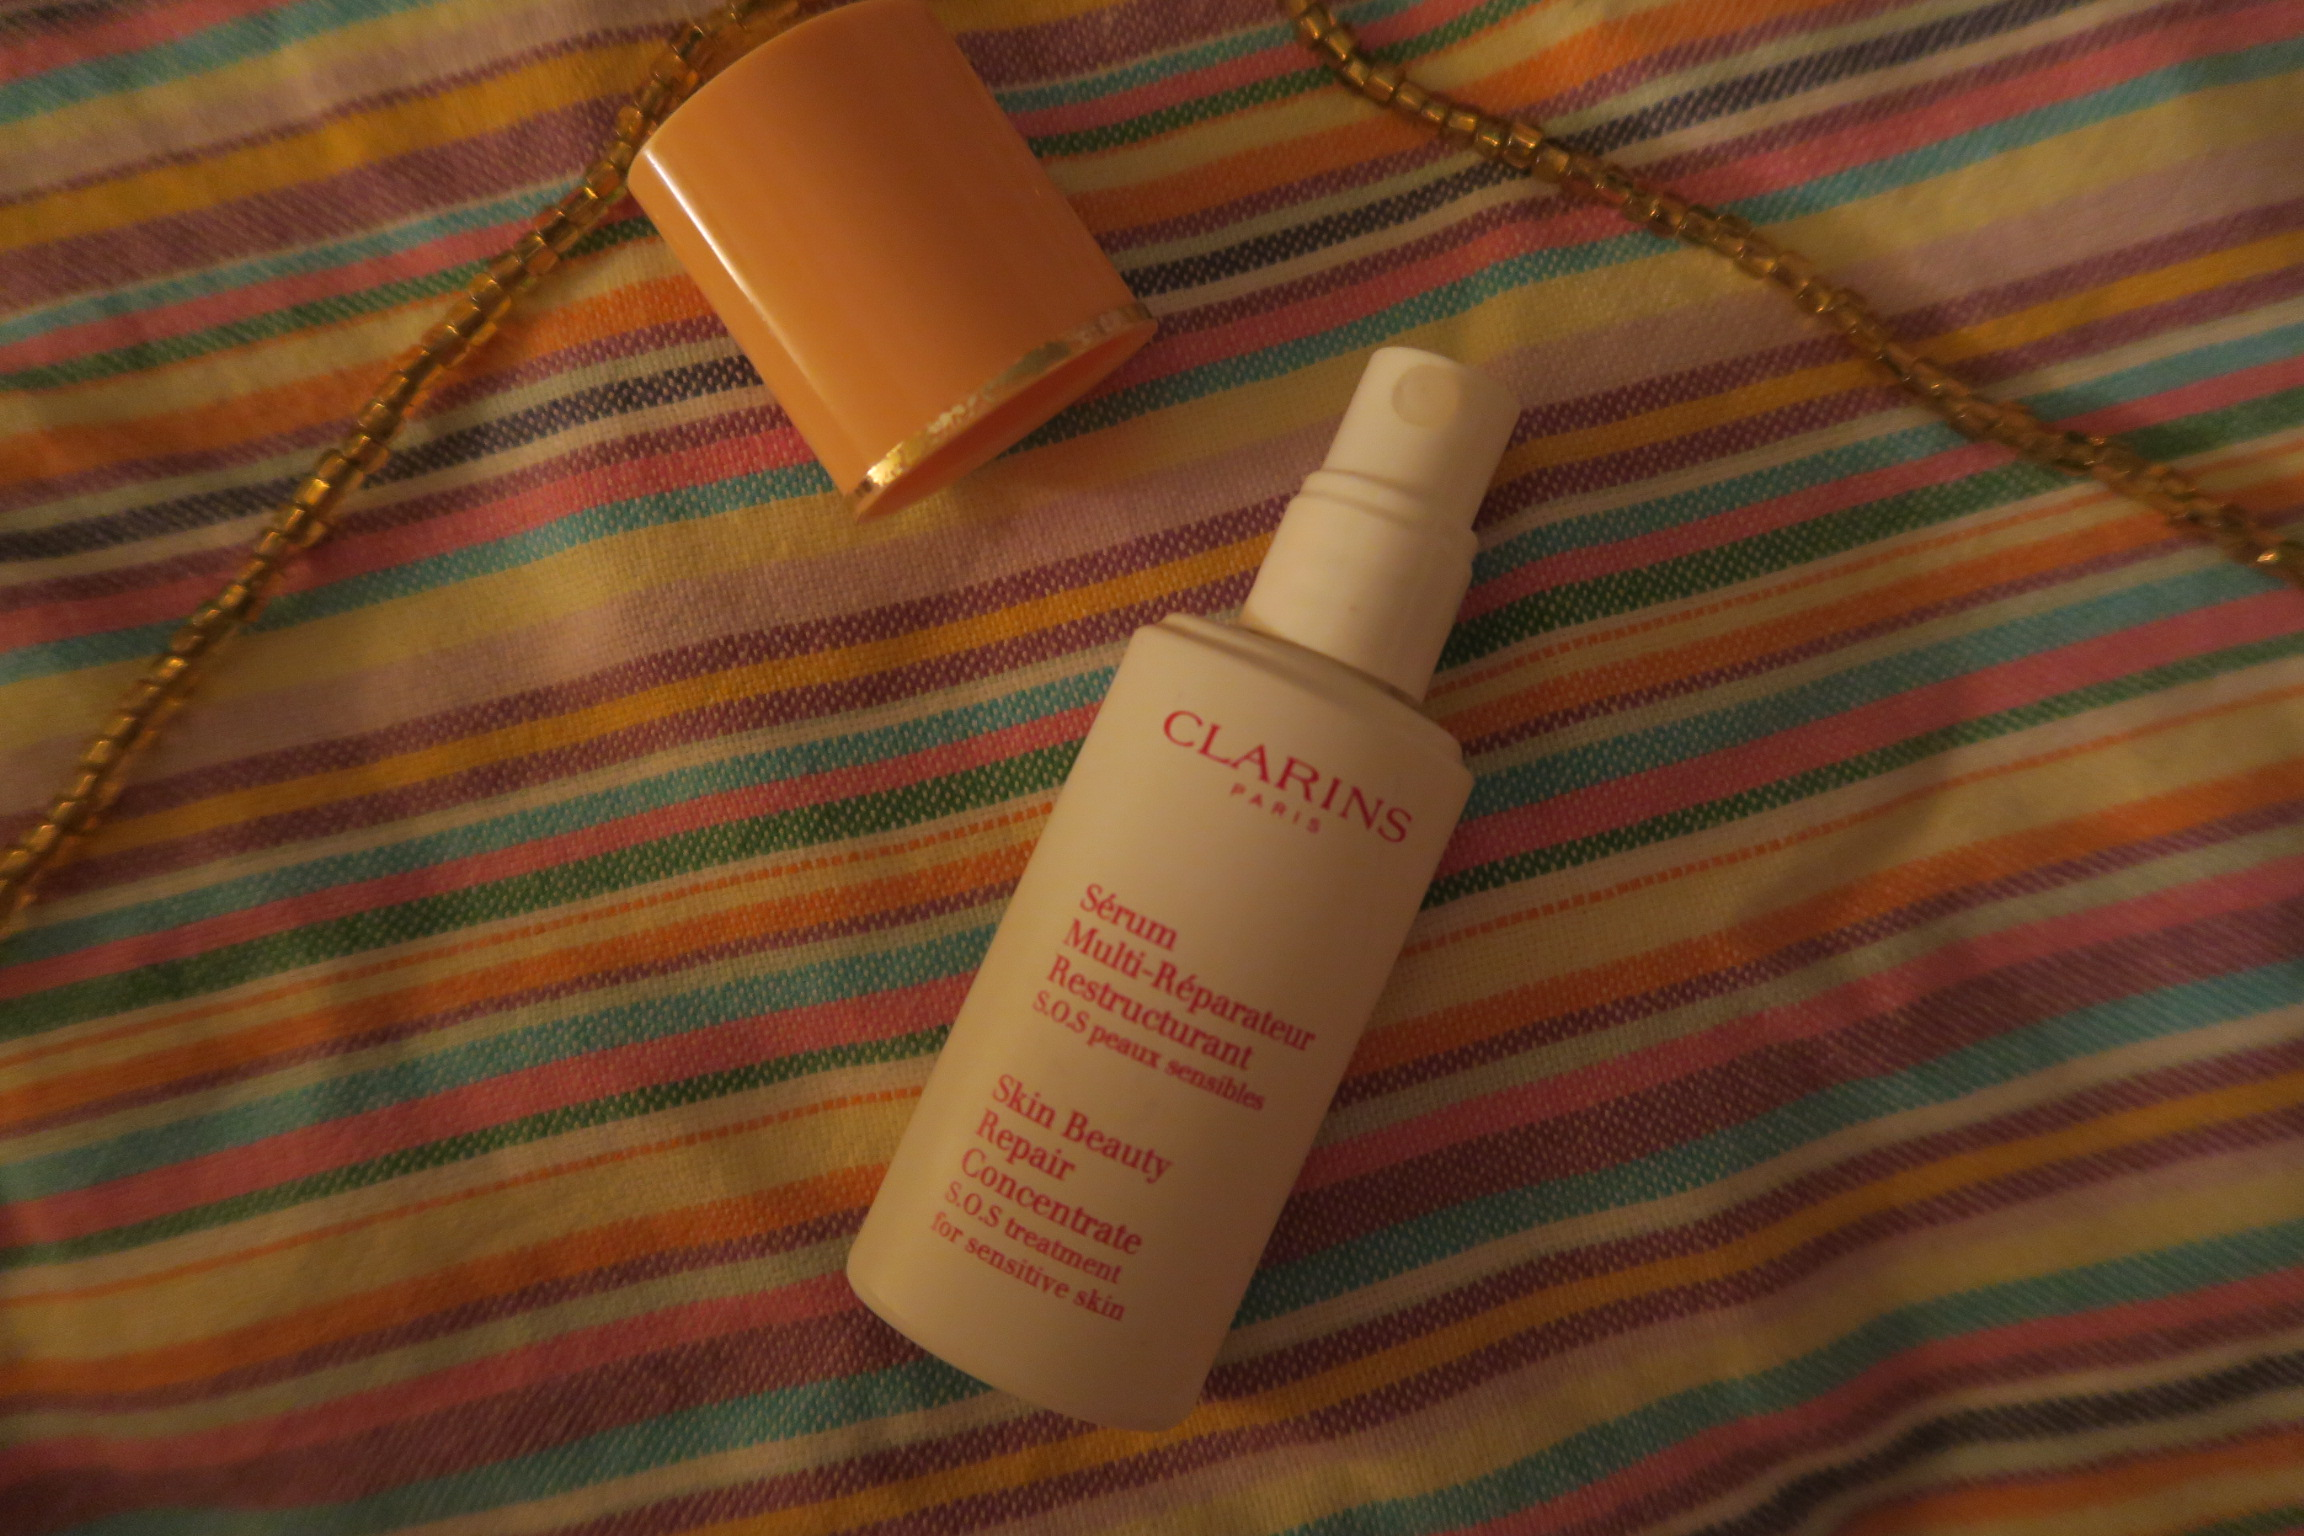 Skin Beauty Repair Concentrate - S.O.S Treatment for Sensitive Skin by Clarins #20